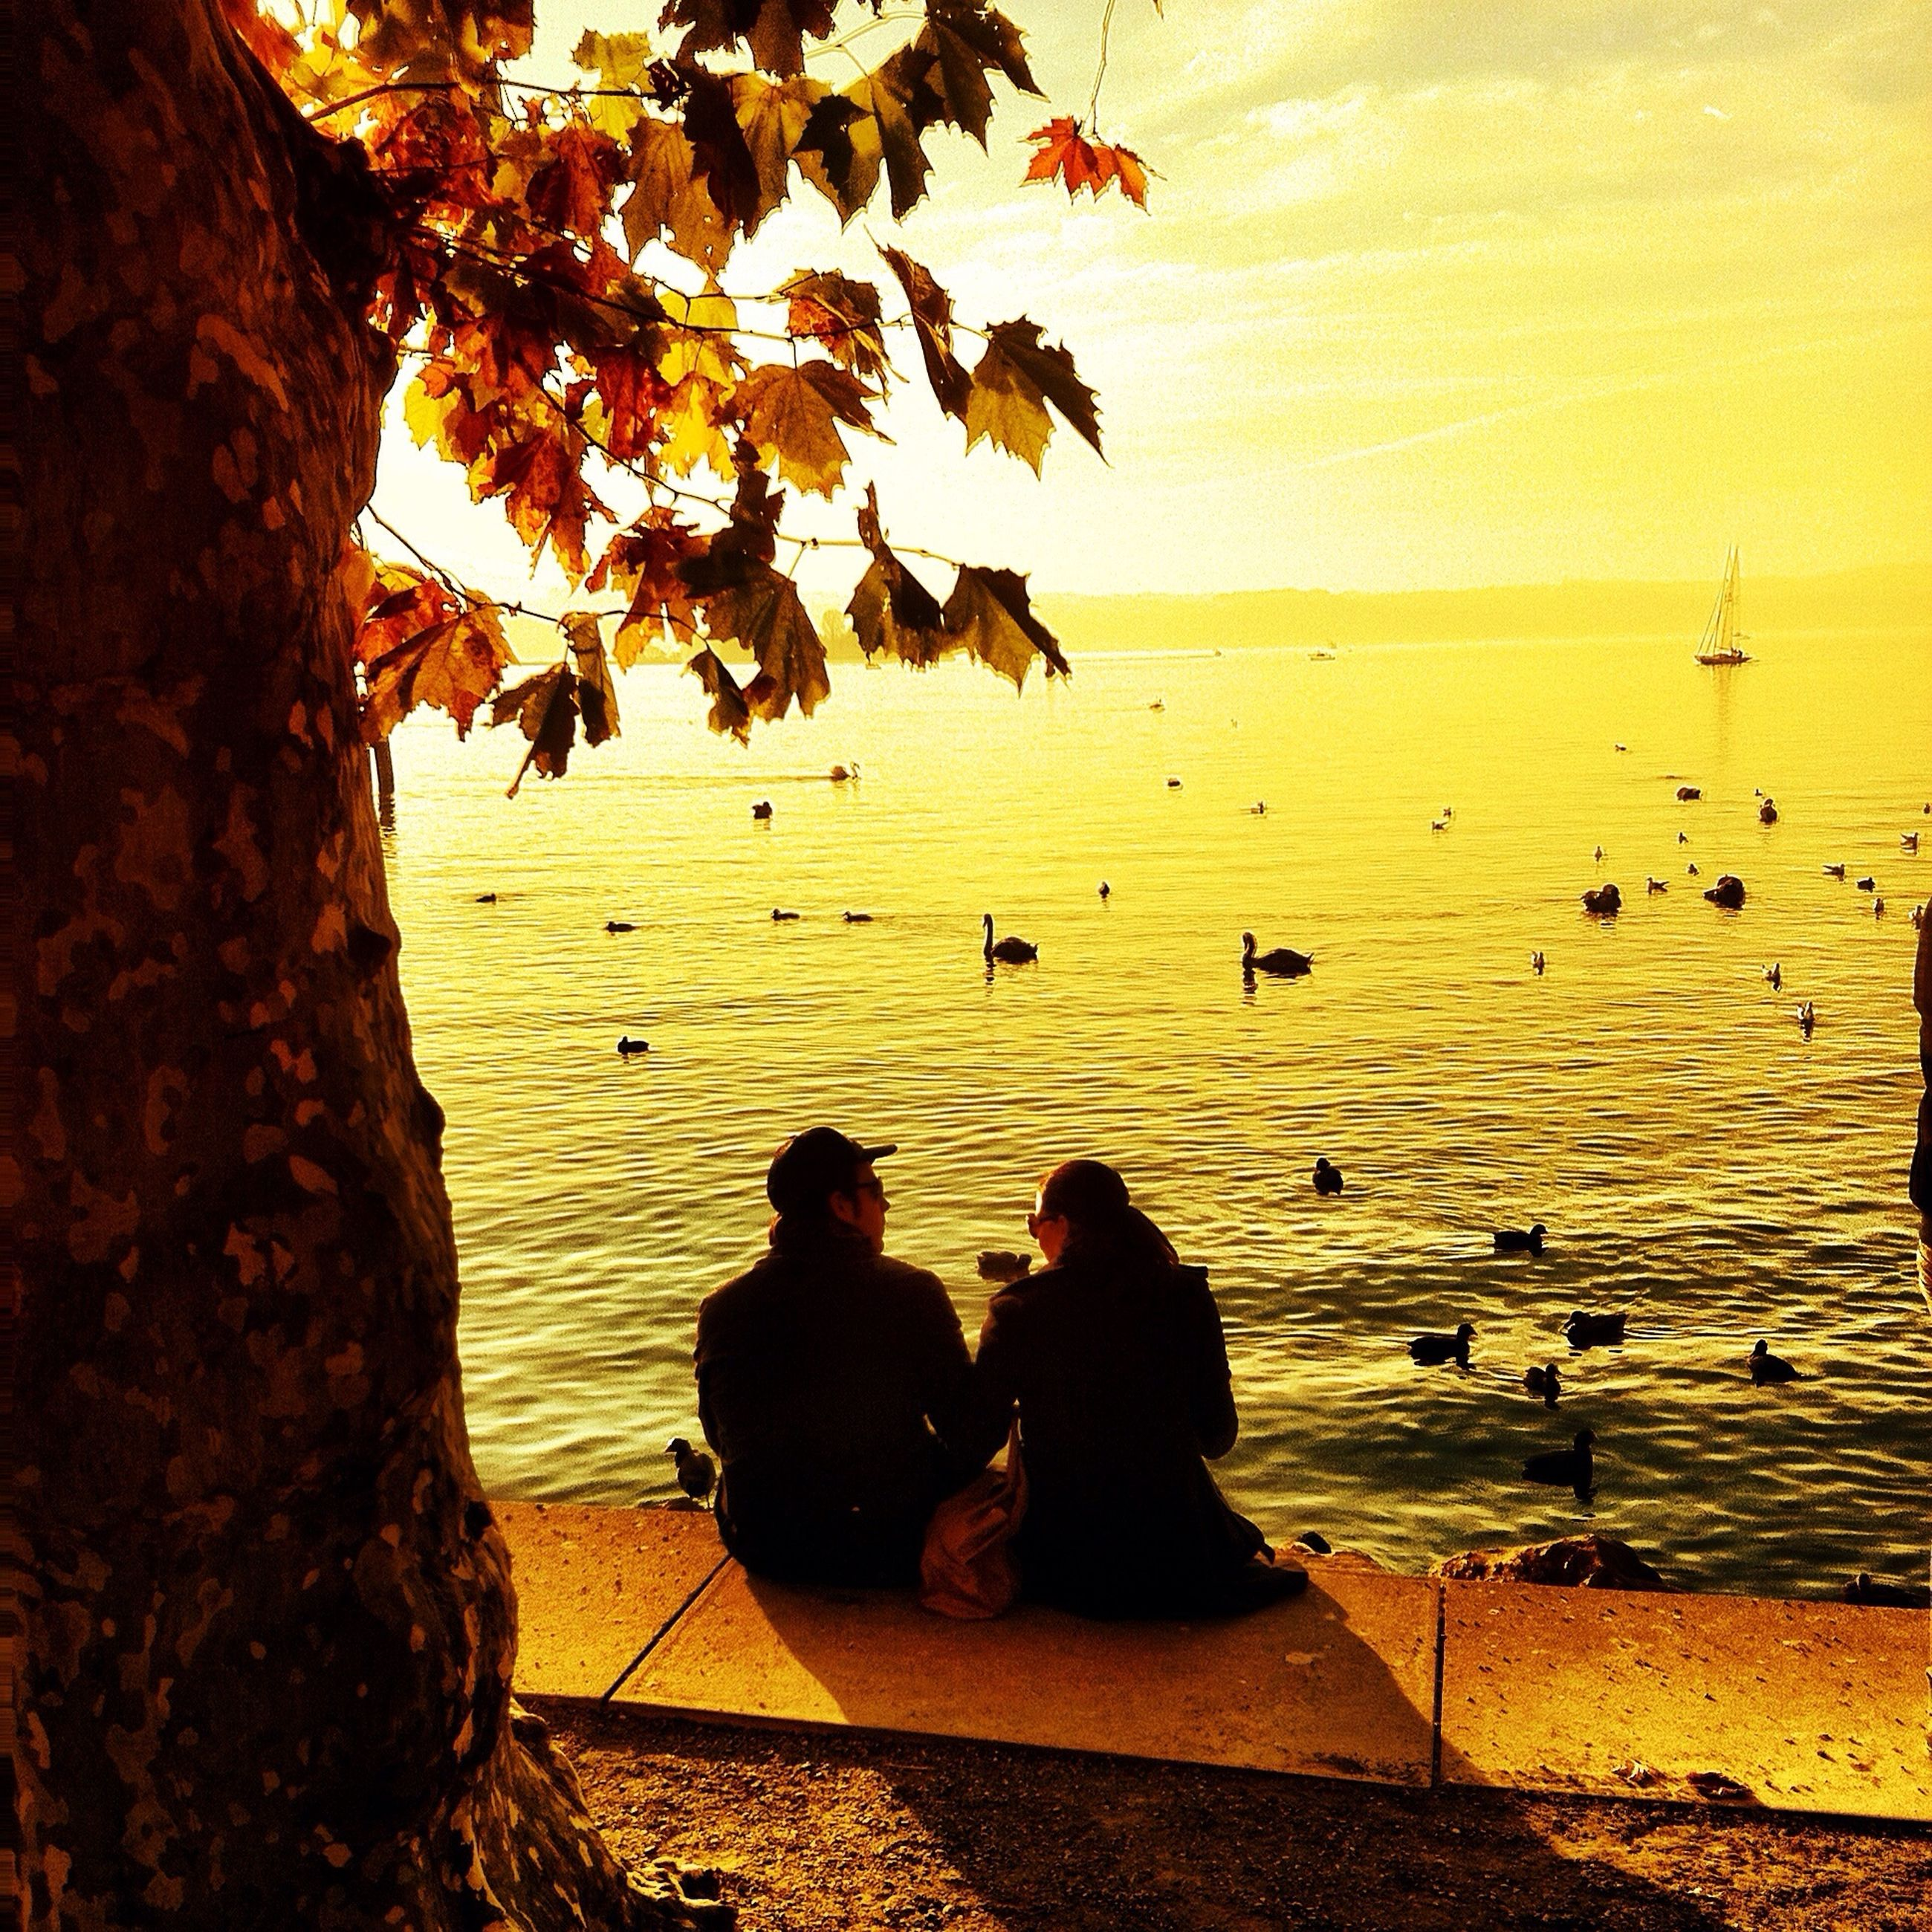 sitting, lifestyles, men, leisure activity, person, tree, nature, relaxation, beauty in nature, togetherness, sunset, silhouette, tranquility, scenics, tranquil scene, water, sea, branch